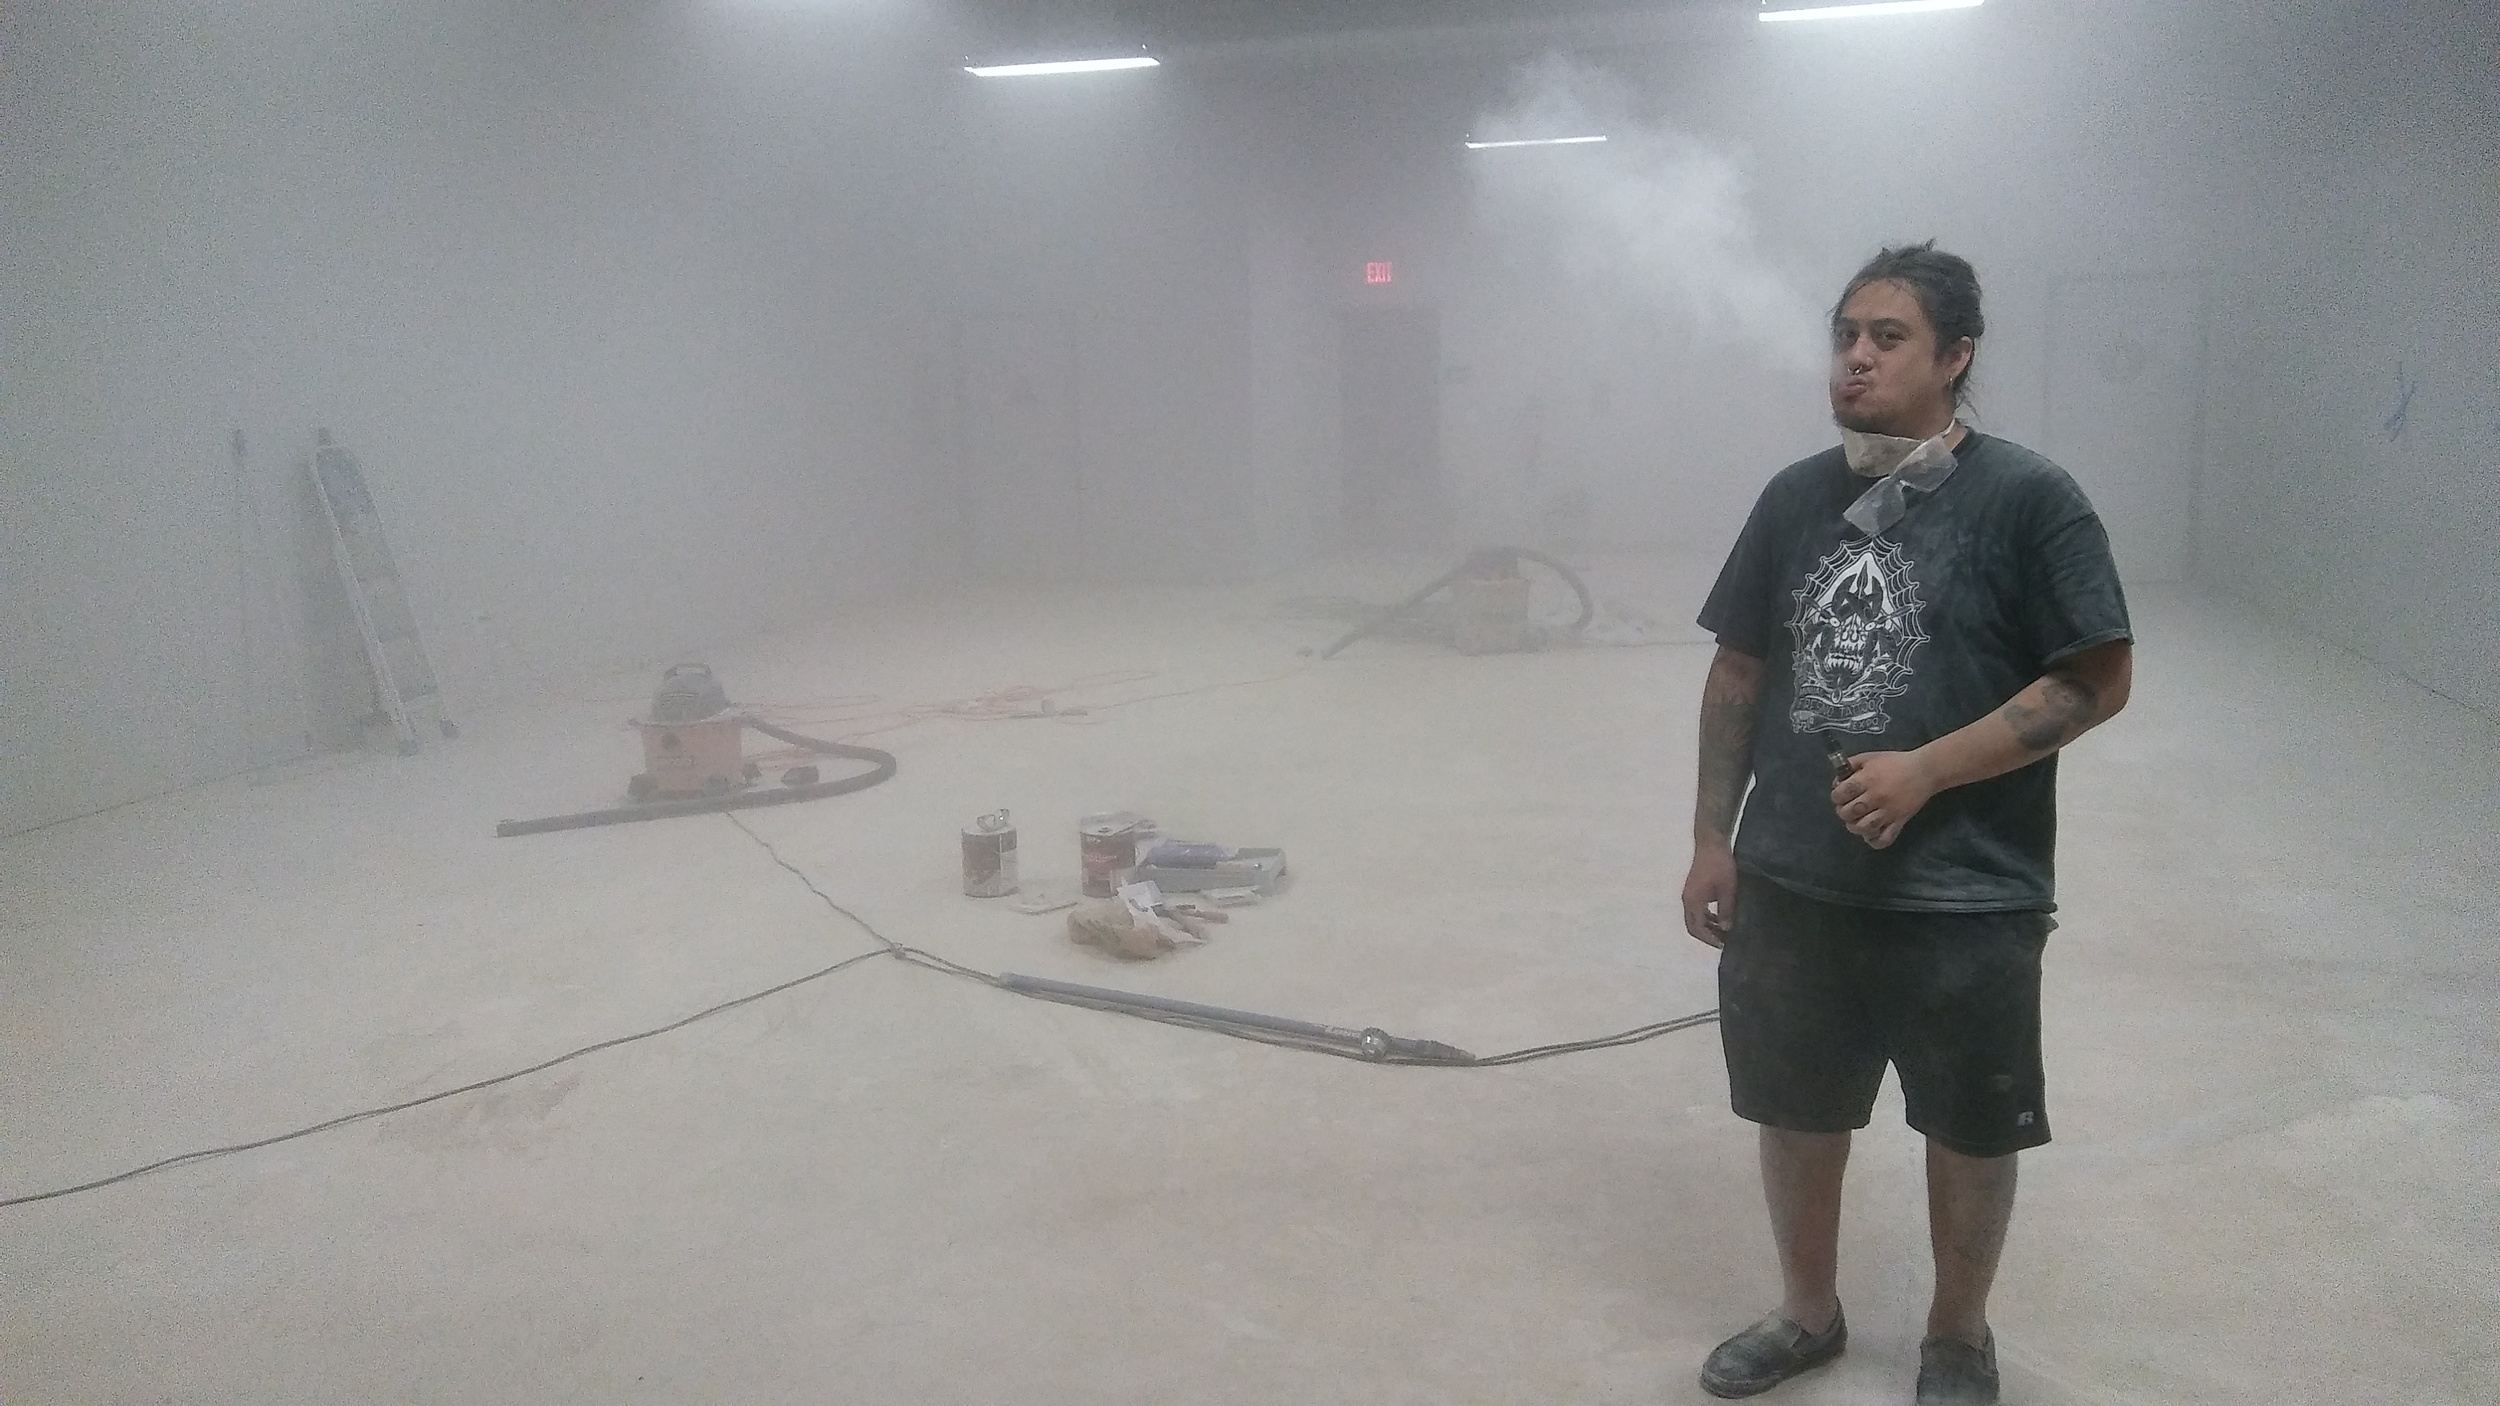 We get it Andre, you vape